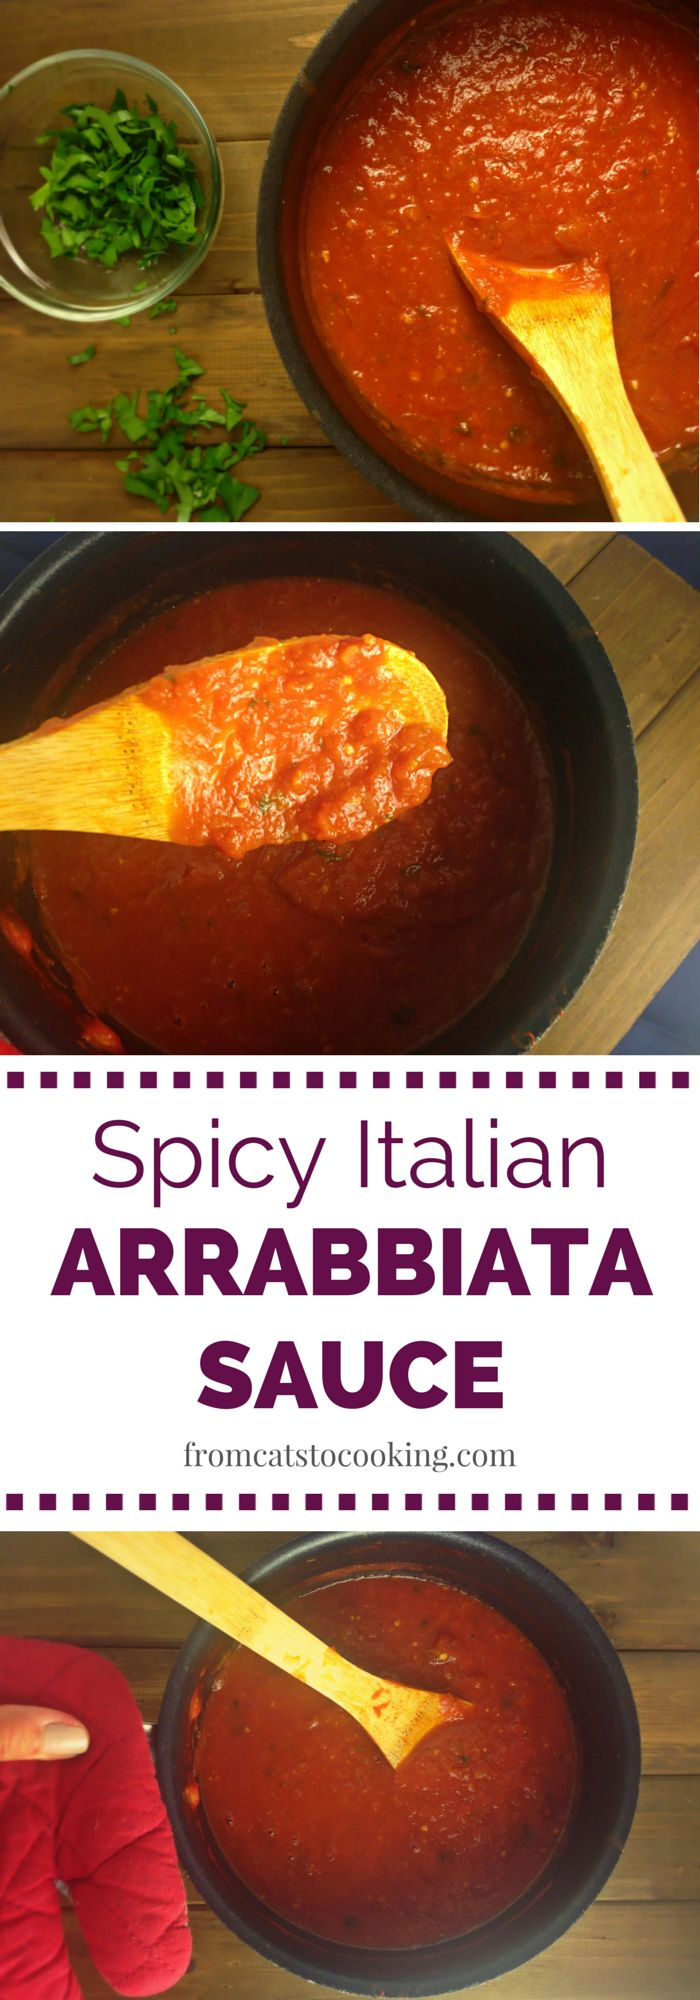 Today, I'm sharing my rustic homemade spicy Italian arrabbiata sauce recipe! Arrabiata sauce is essentially a tomato sauce made with garlic, olive oil, and most importantly, red pepper flakes. It's traditionally used as a pasta sauce but I've also used it as sauce on homemade pizza, on meatballs and even in a red chile stew. ThoughRead more